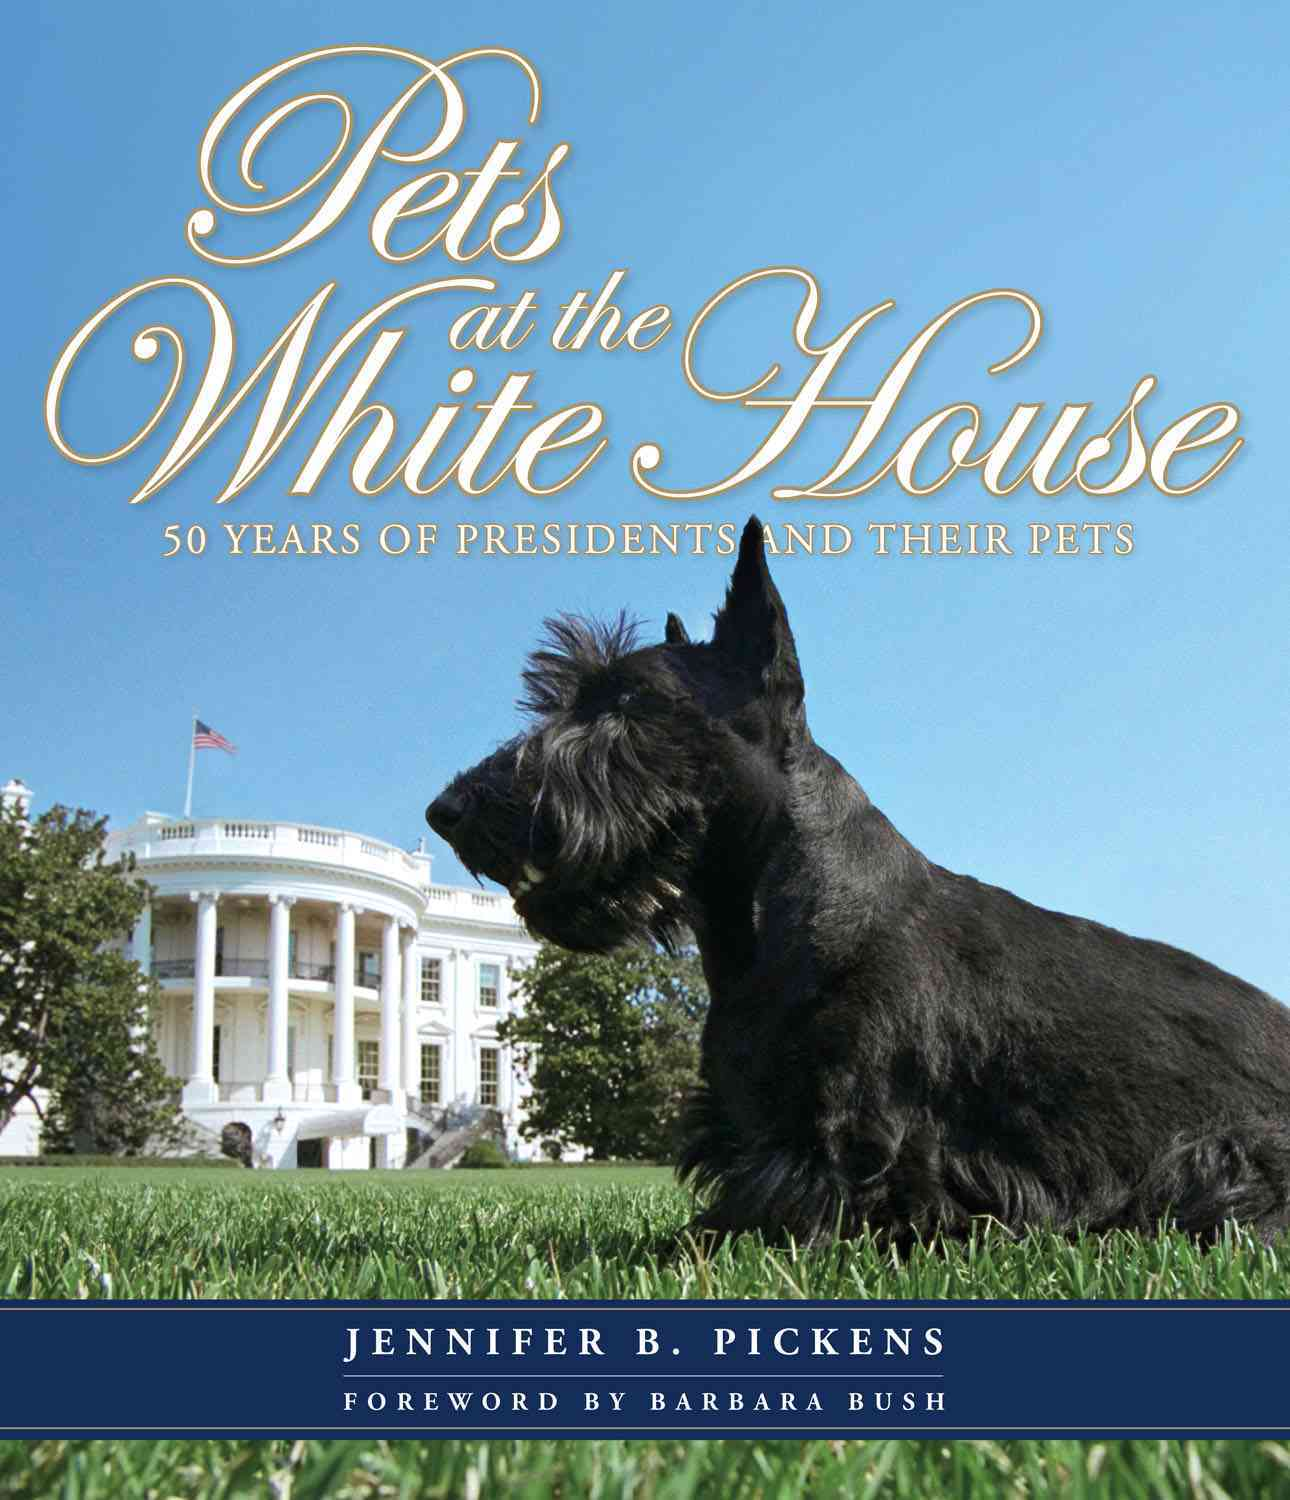 Pets at the White House (Hardcover)